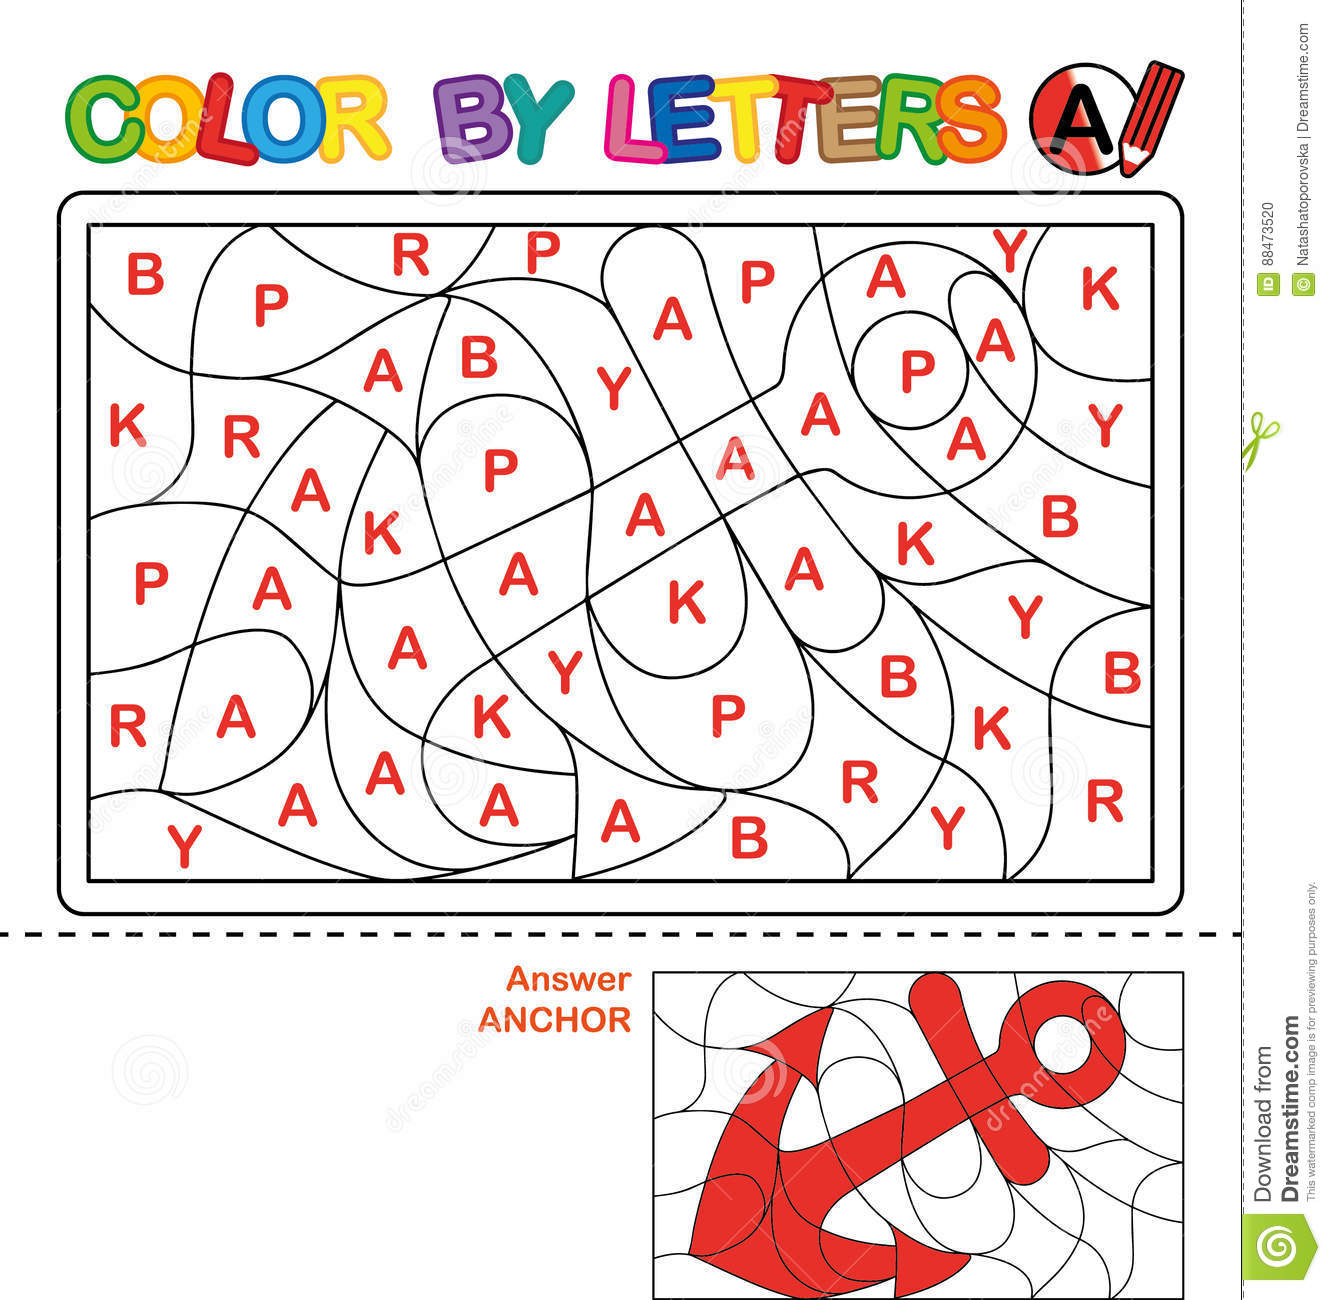 Color By Letter Puzzle For Children Anchor Stock Vector